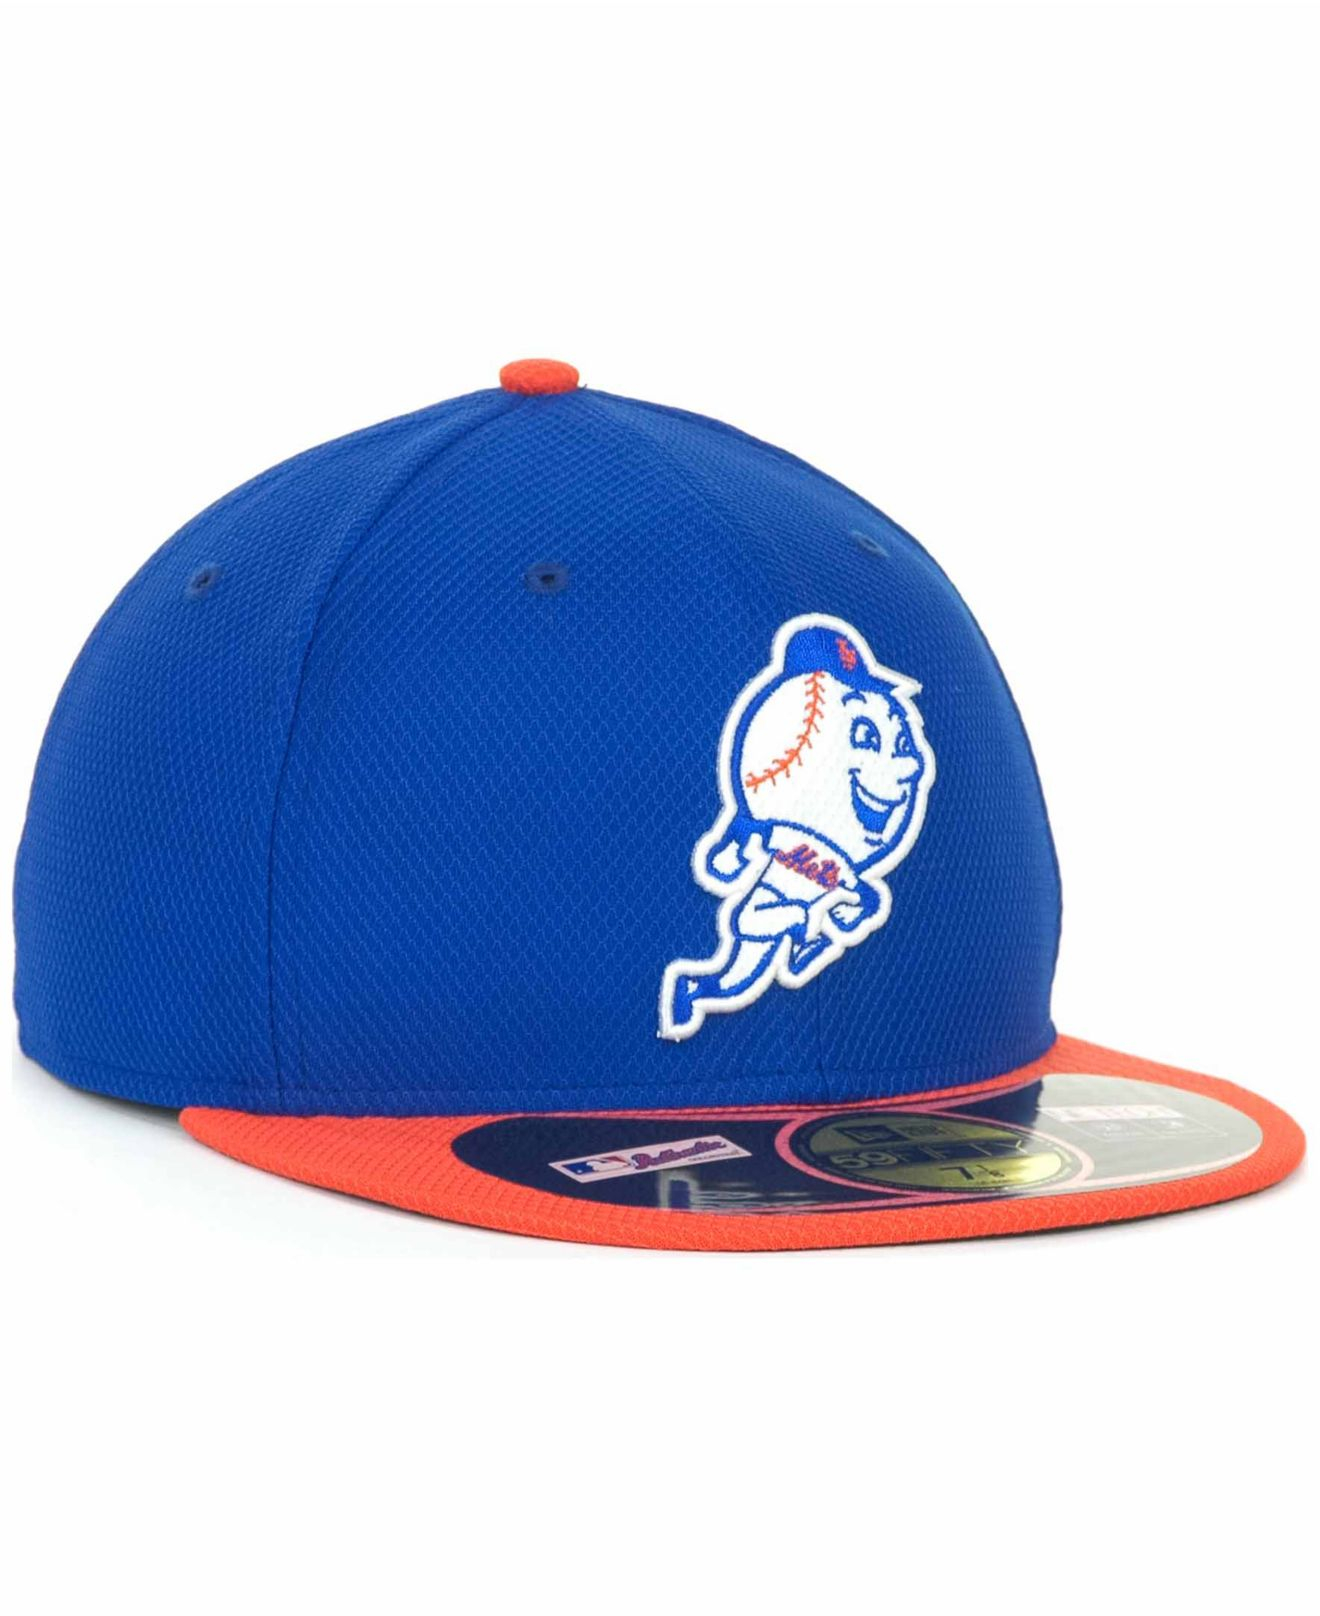 bbfff7b2aea Lyst - KTZ New York Mets 59fifty Fitted Cap in Blue for Men